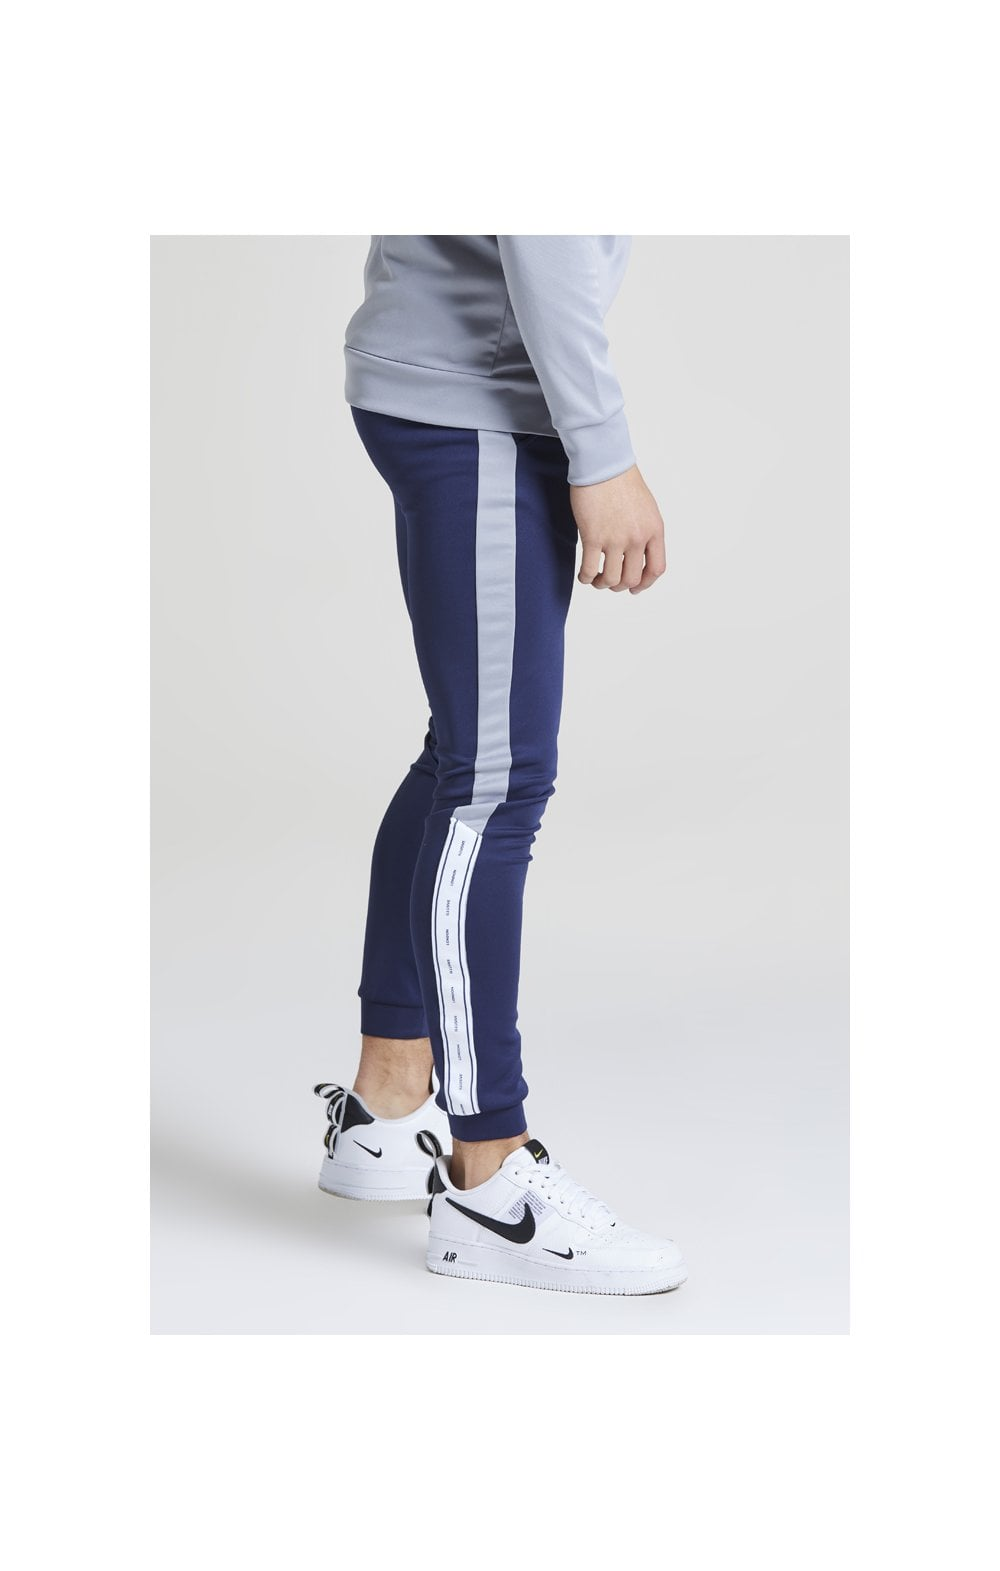 Illusive London Taped Joggers - Navy & Grey (1)